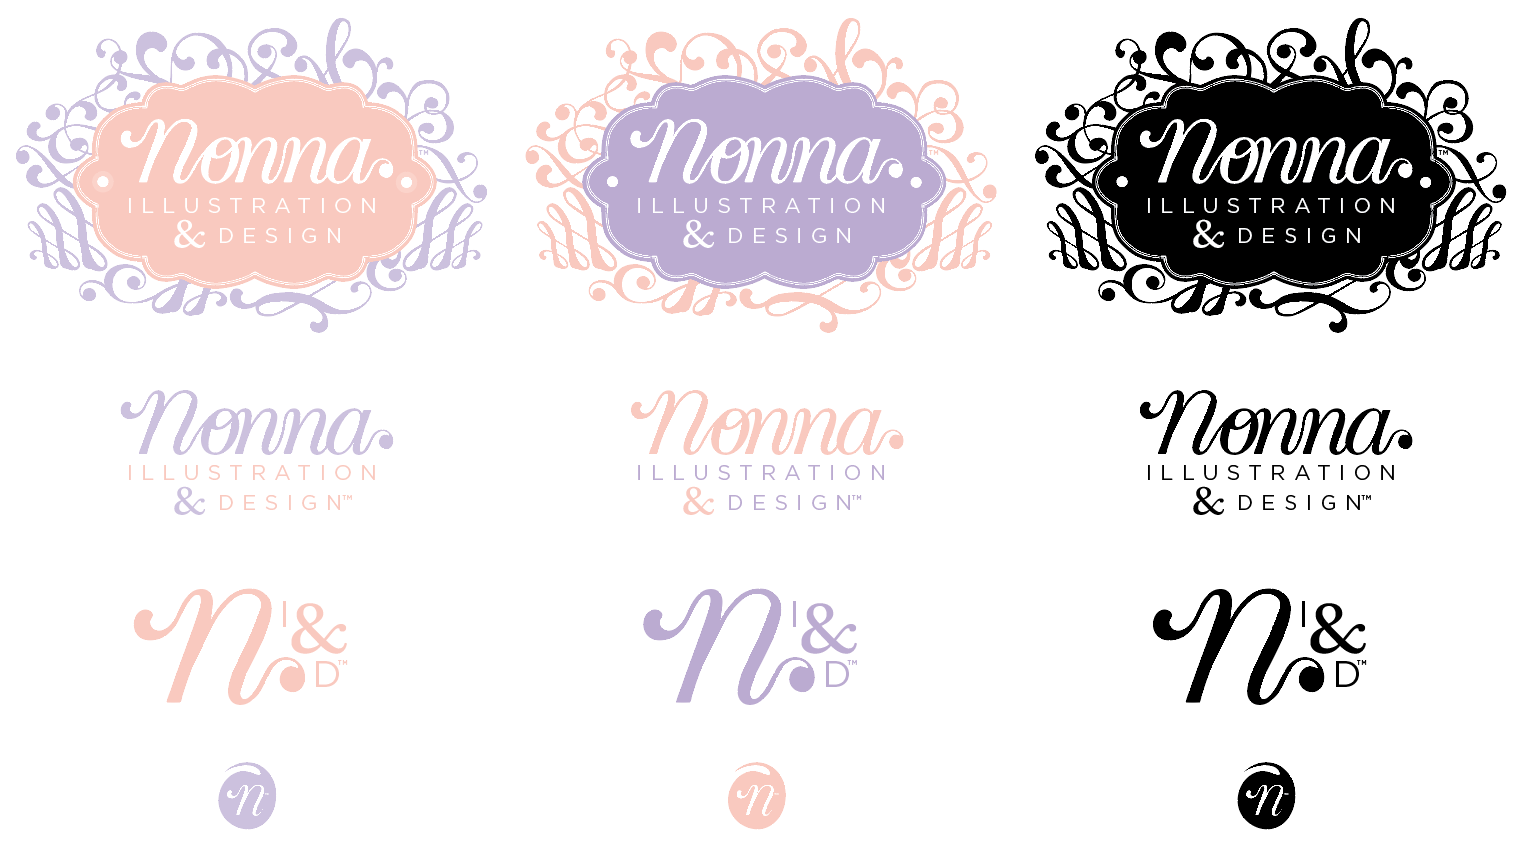 logo-redesign-2015-nonna-illustration-and-design.png